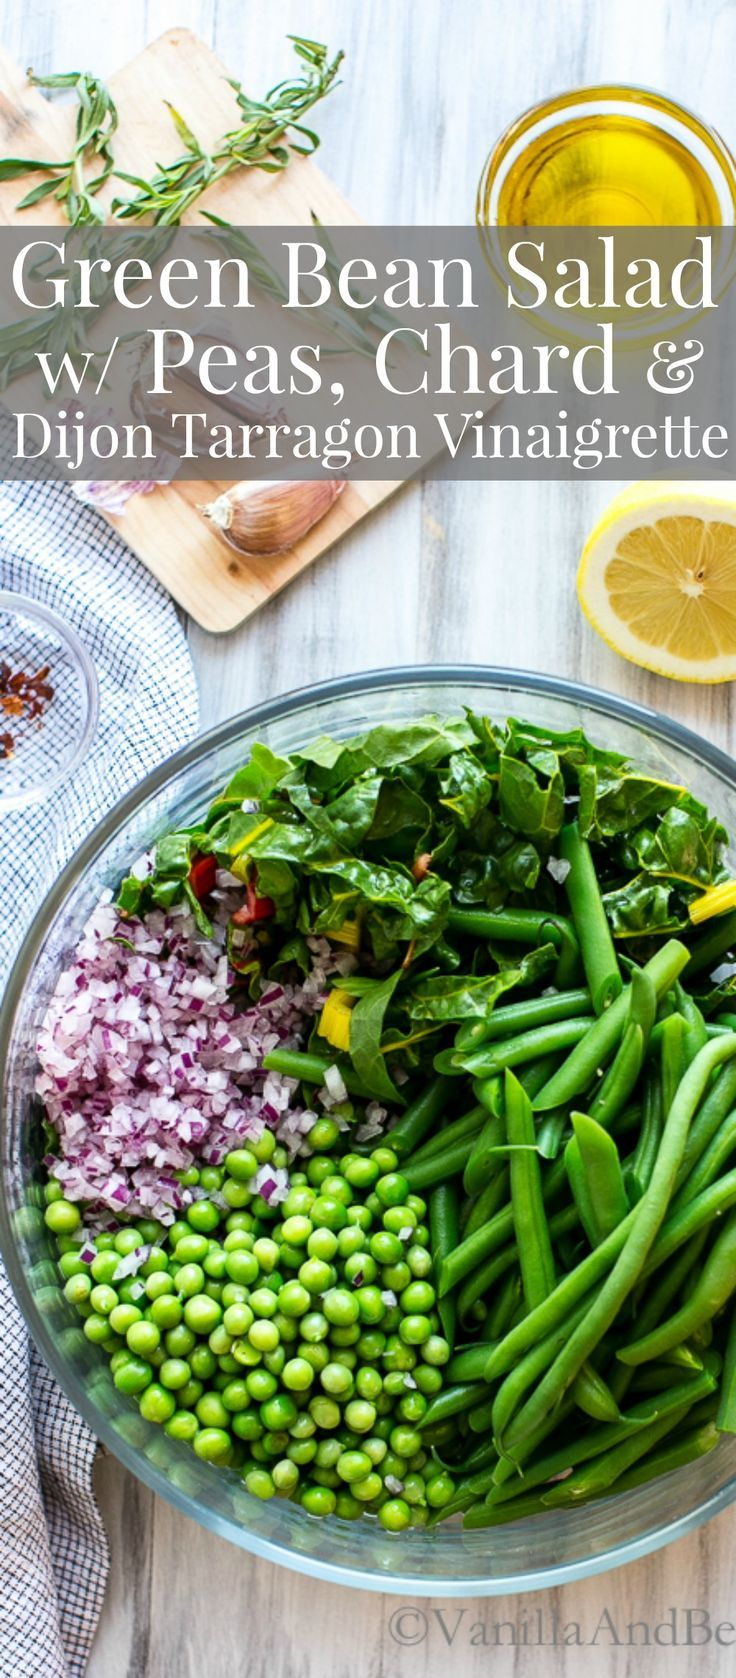 A Summertime salad with the freshest market veggies. We've eaten this salad as a main course, but it can be a star side or fabulous starter. Green Bean Salad with Peas, Chard and Dijon Tarragon Vinaigrette is snappy and oh so fresh! Vegan + gluten free | Recipes | Vegetarian